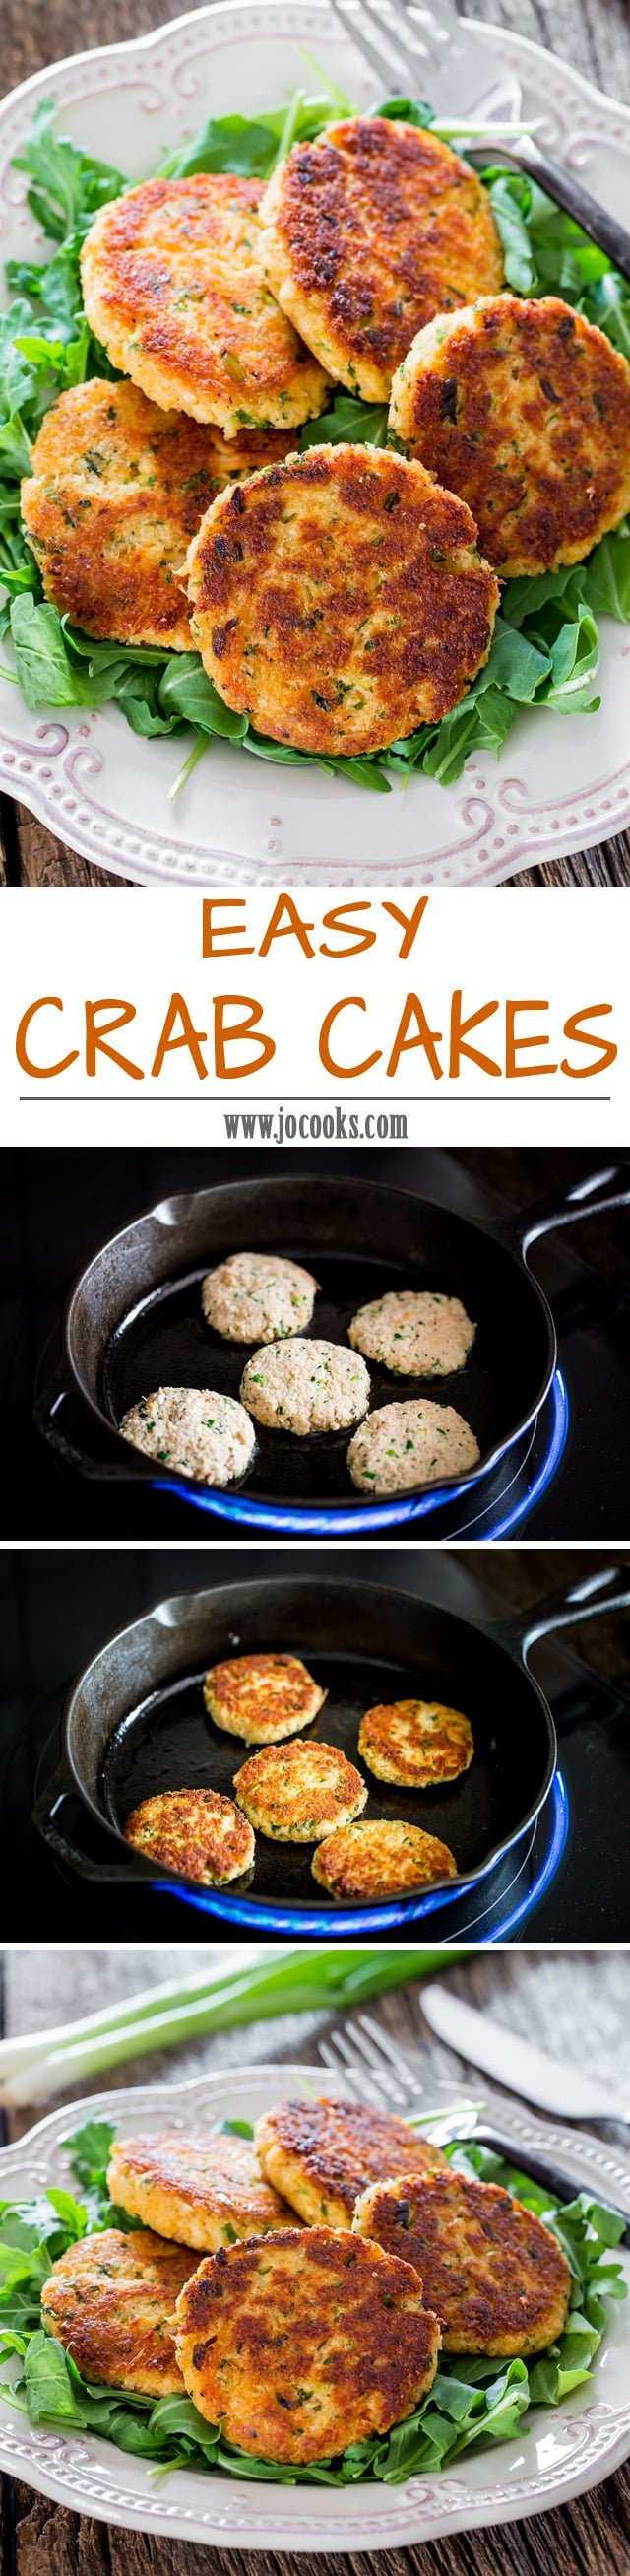 Easy Crab Cakes - these succulent pan-fried crab cakes are fast, easy and delicious and won't crumble. #crabcakes